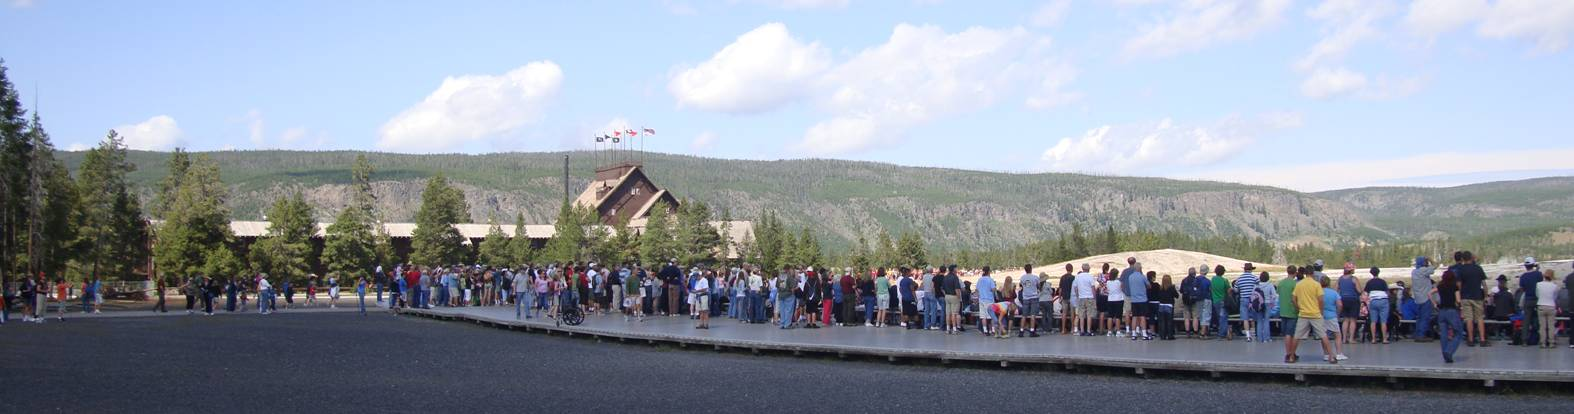 picture: a huge crowd gathers to watch Old Faithful blow water into the air.  Yellowstone Park.